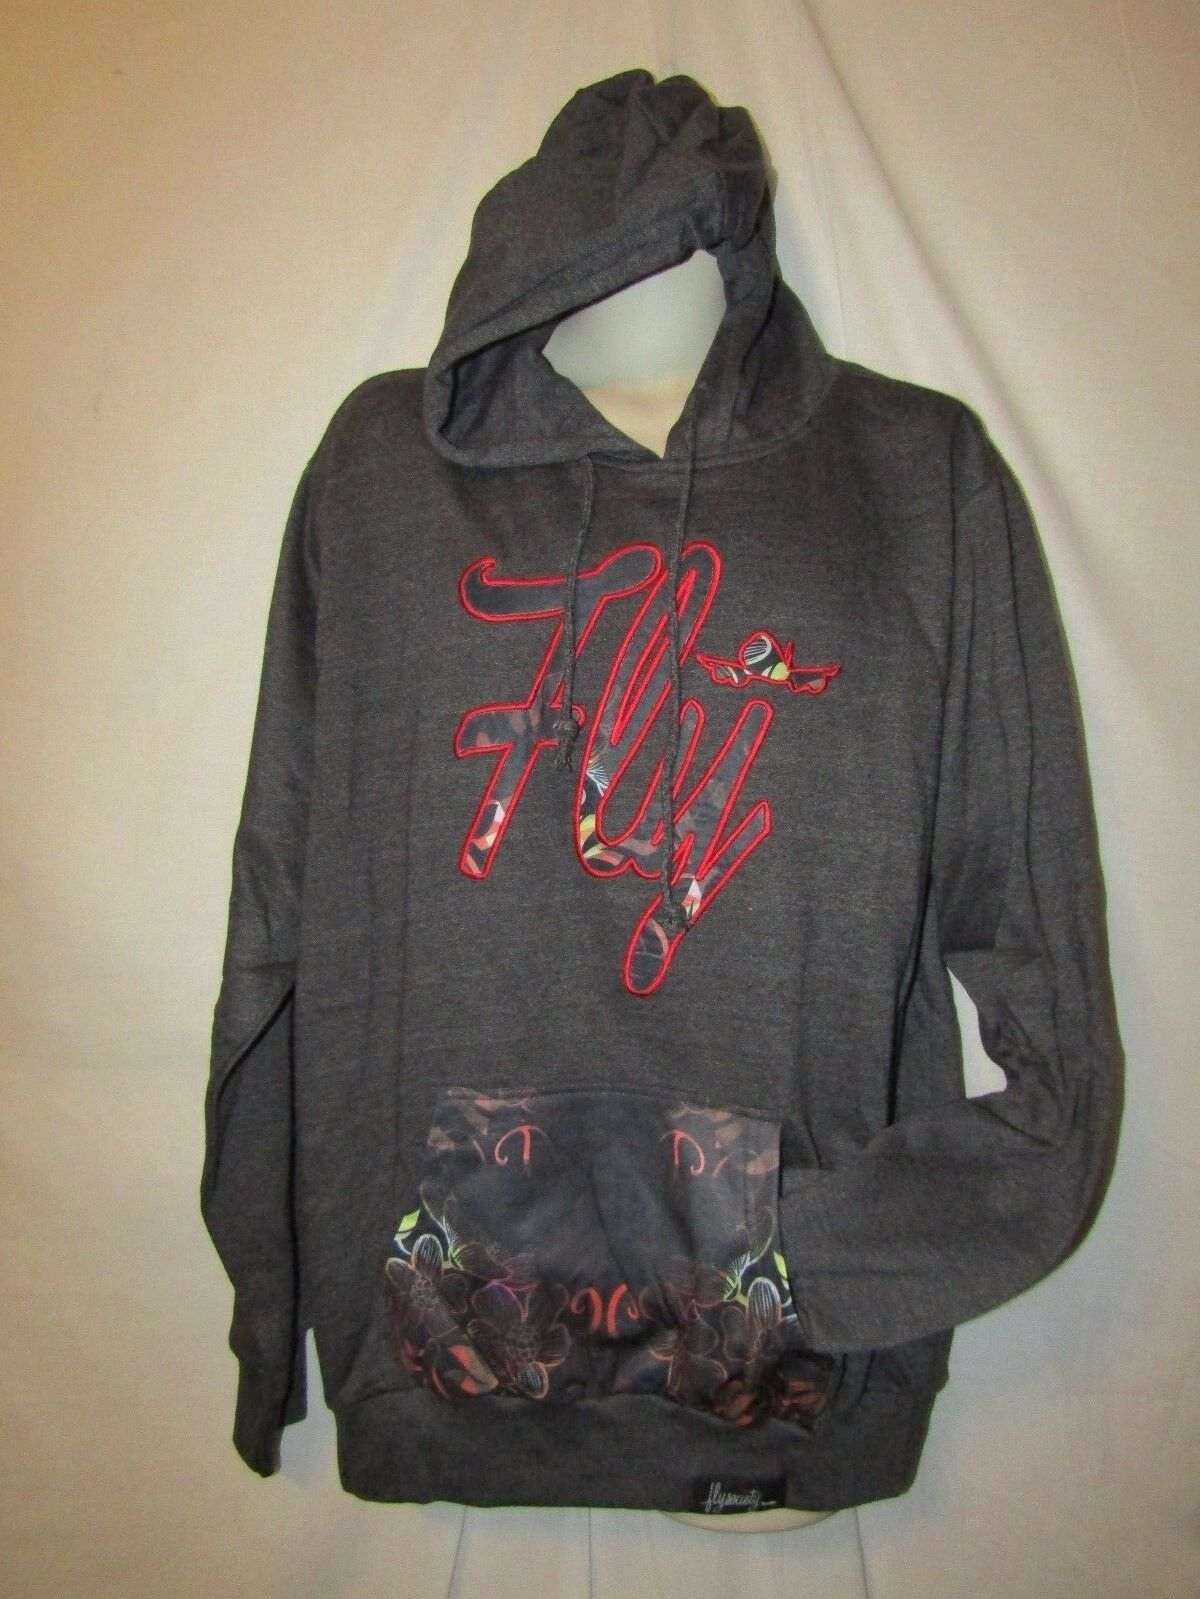 Maserati Hoodie-Zip Hoodie-Sweatshirt Free shipping-Top Men/'s shirts